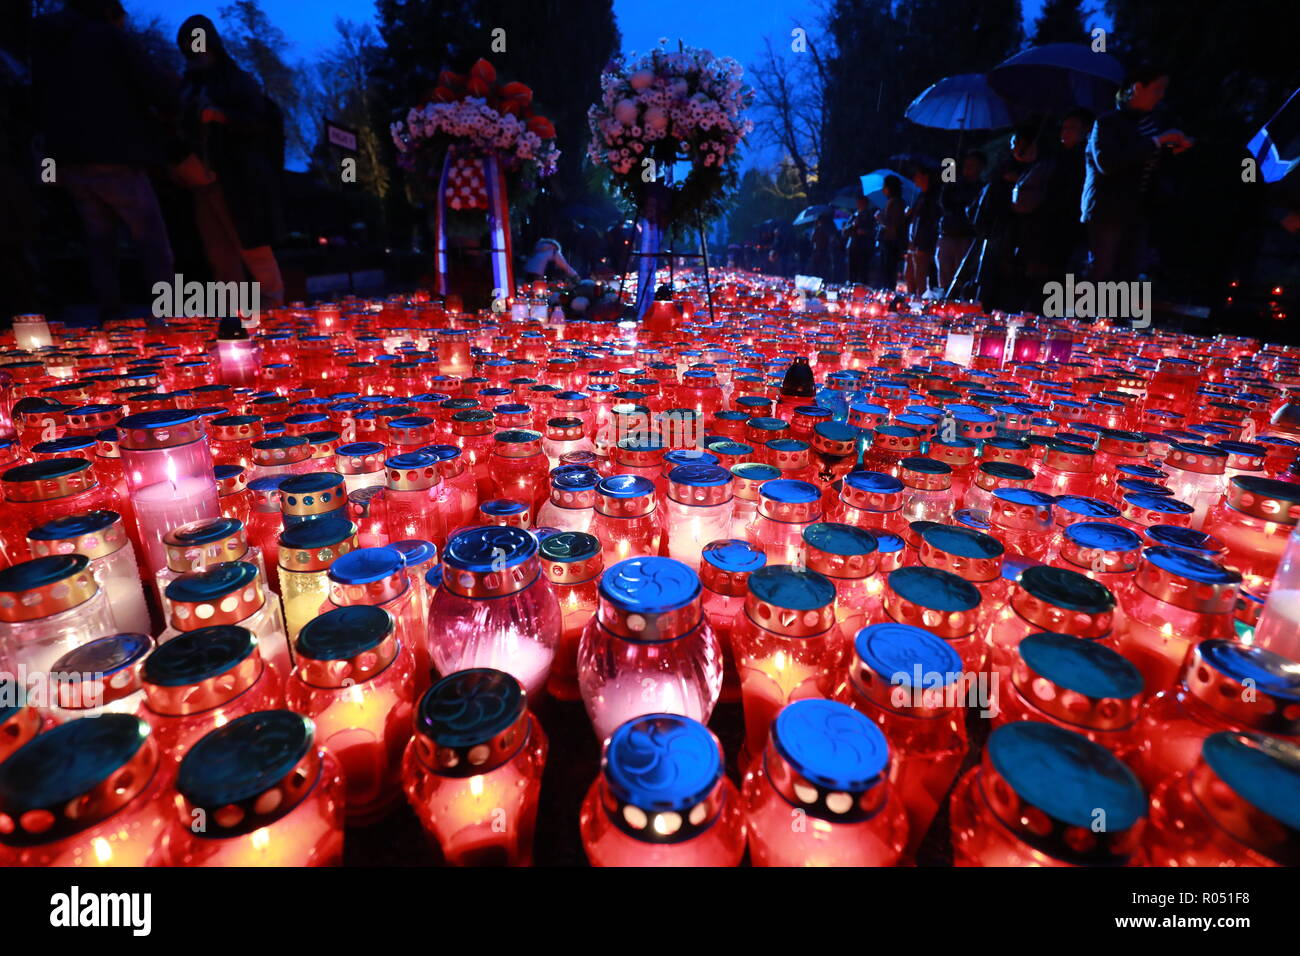 Zagreb, Croatia. 1st Nov, 2018. Candles are lit for the deceased at Mirogoj Cemetery in Zagreb, Croatia, on Nov. 1, 2018. Croatian people gathered at cemeteries around the country to honor their late relatives, commemorating All Saints' Day. Credit: Sanjin Strukic/Xinhua/Alamy Live News - Stock Image